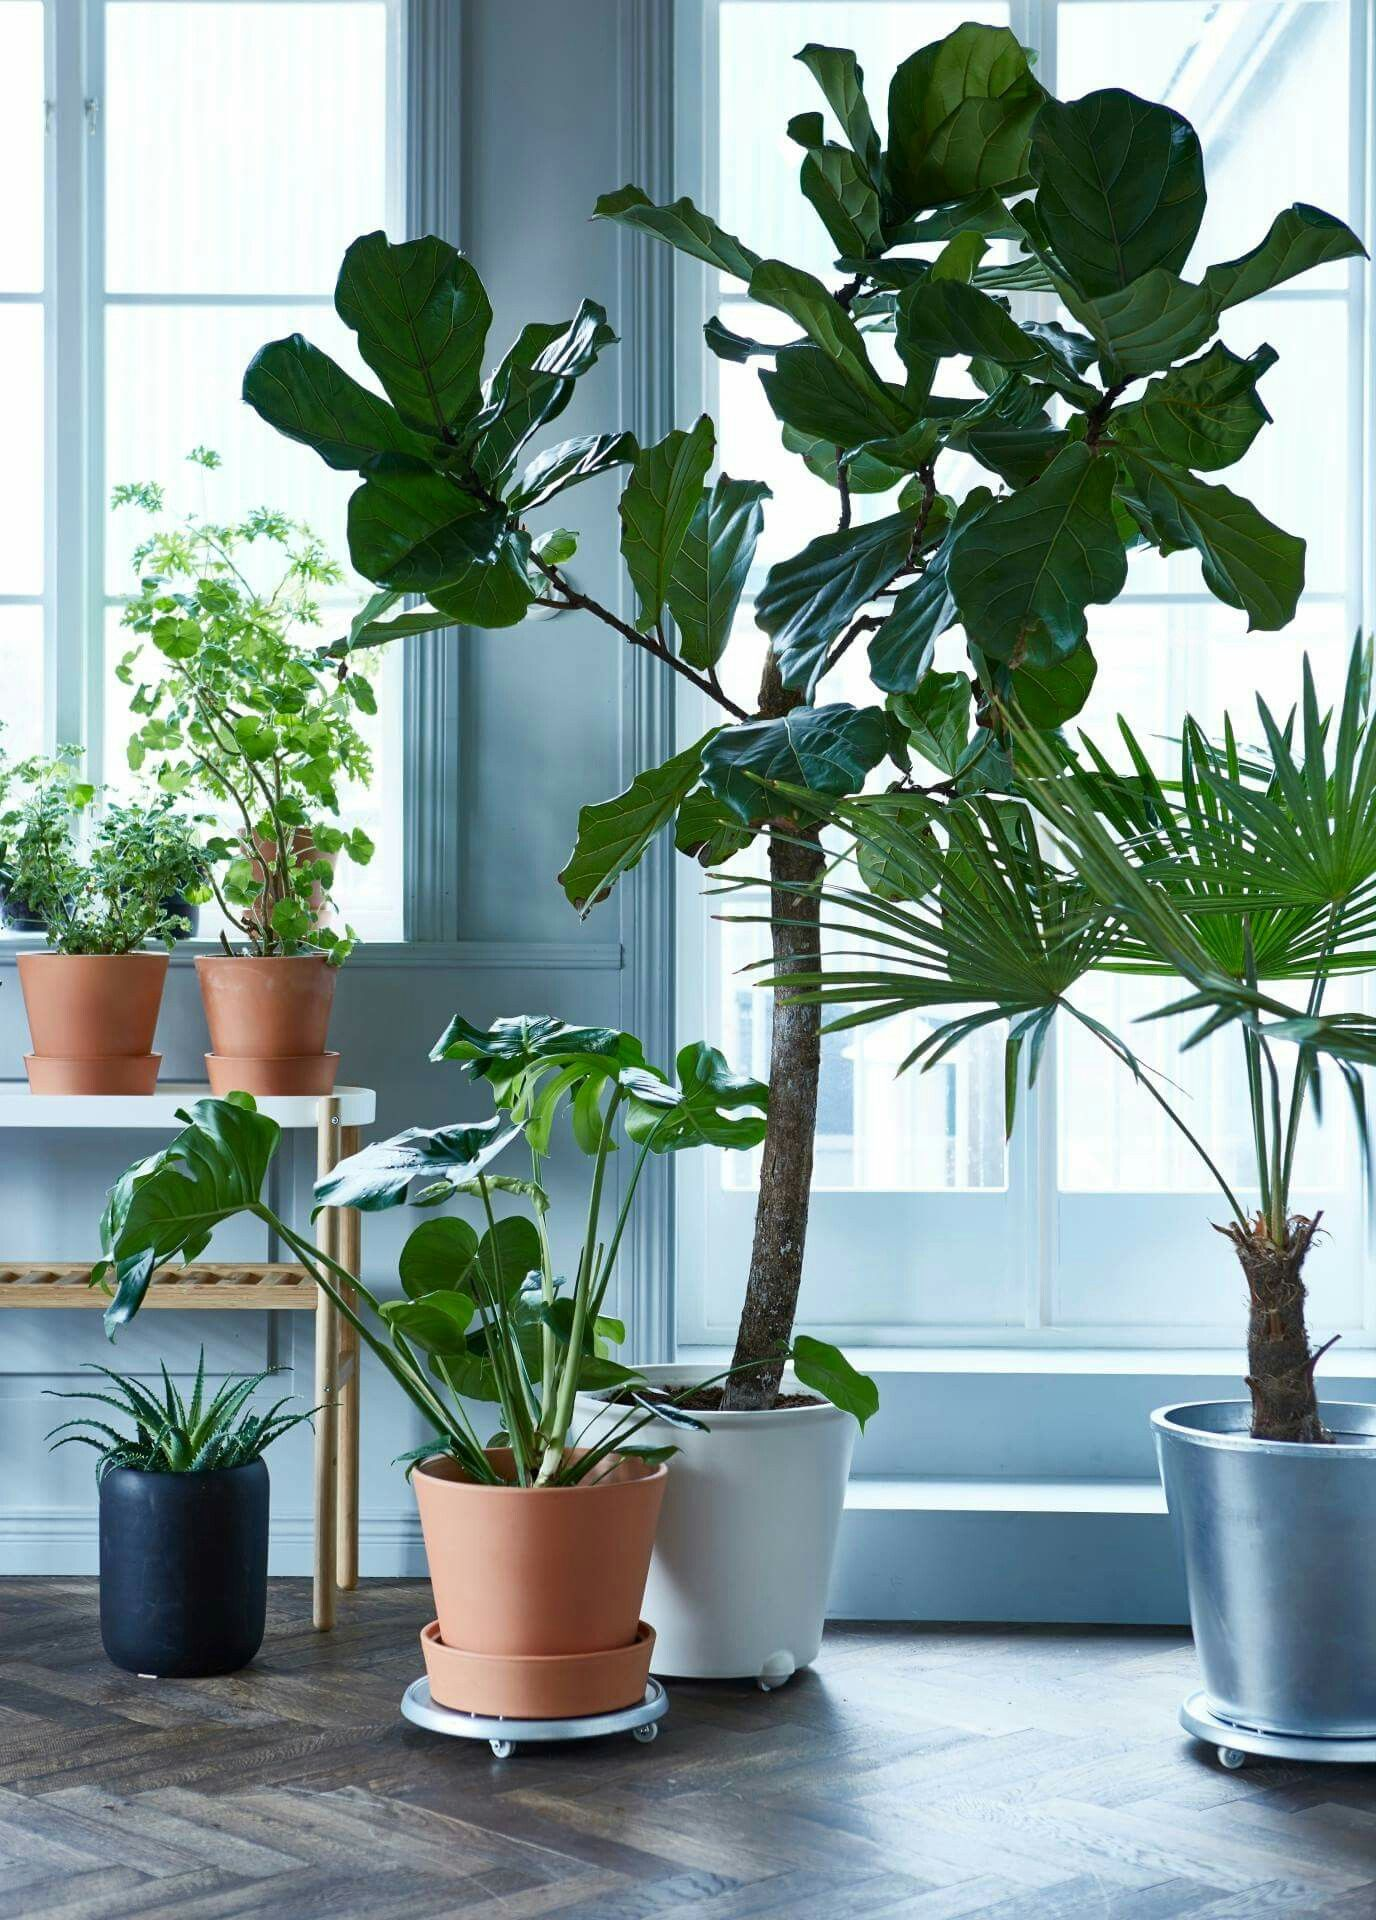 plantes d 39 int rieur chez ikea lakberendez plante interieur plante verte s int rieur ikea. Black Bedroom Furniture Sets. Home Design Ideas